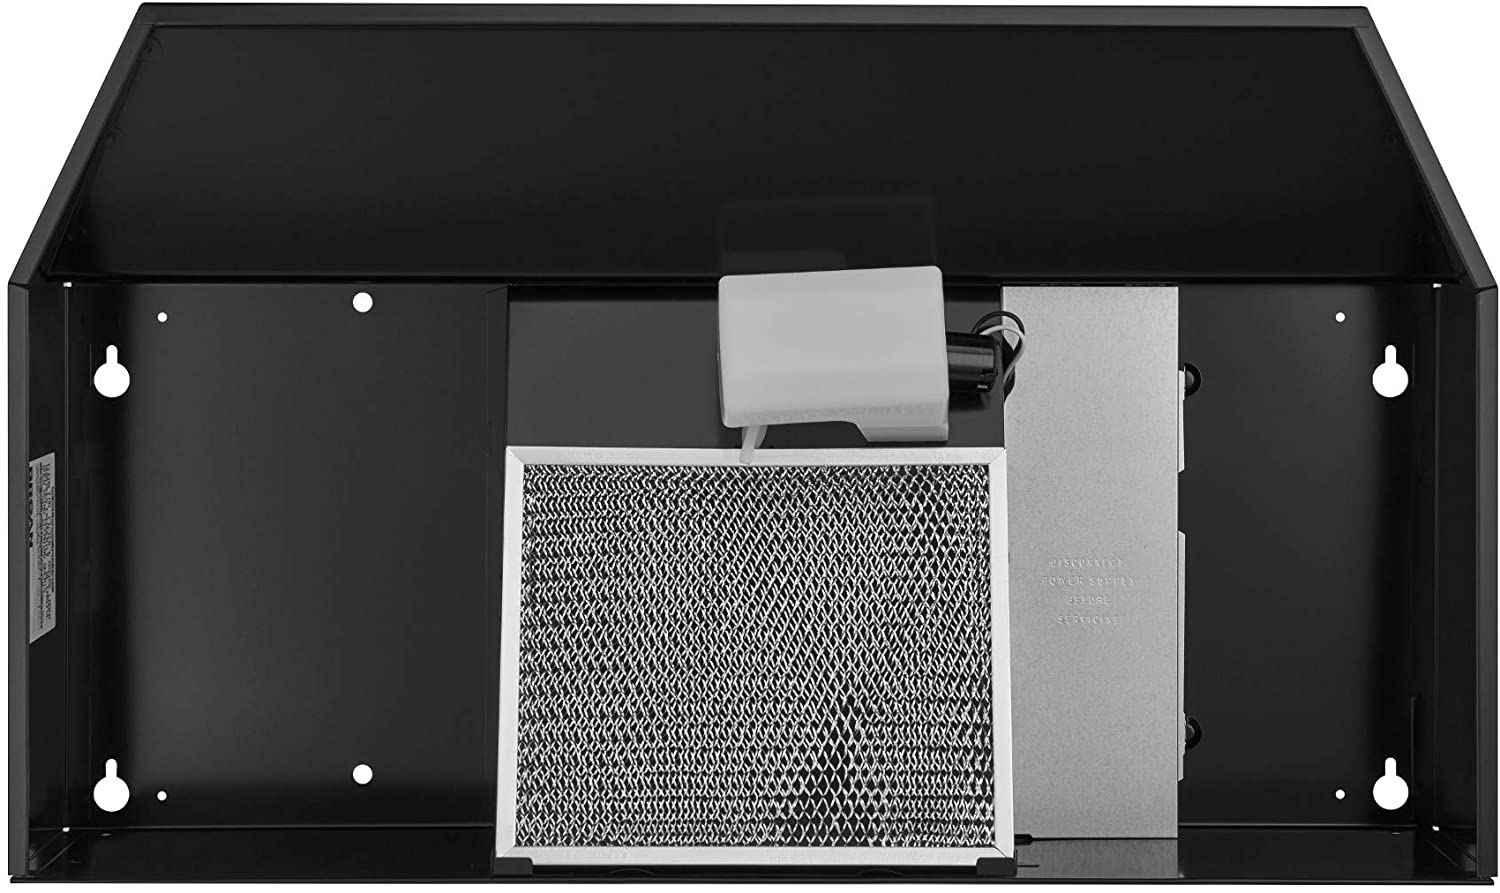 Broan-NuTone F403623 Exhaust Fan for Under Cabinet Two-Speed Four-Way Convertible Range Hood Insert with Light, 36-Inch, Black